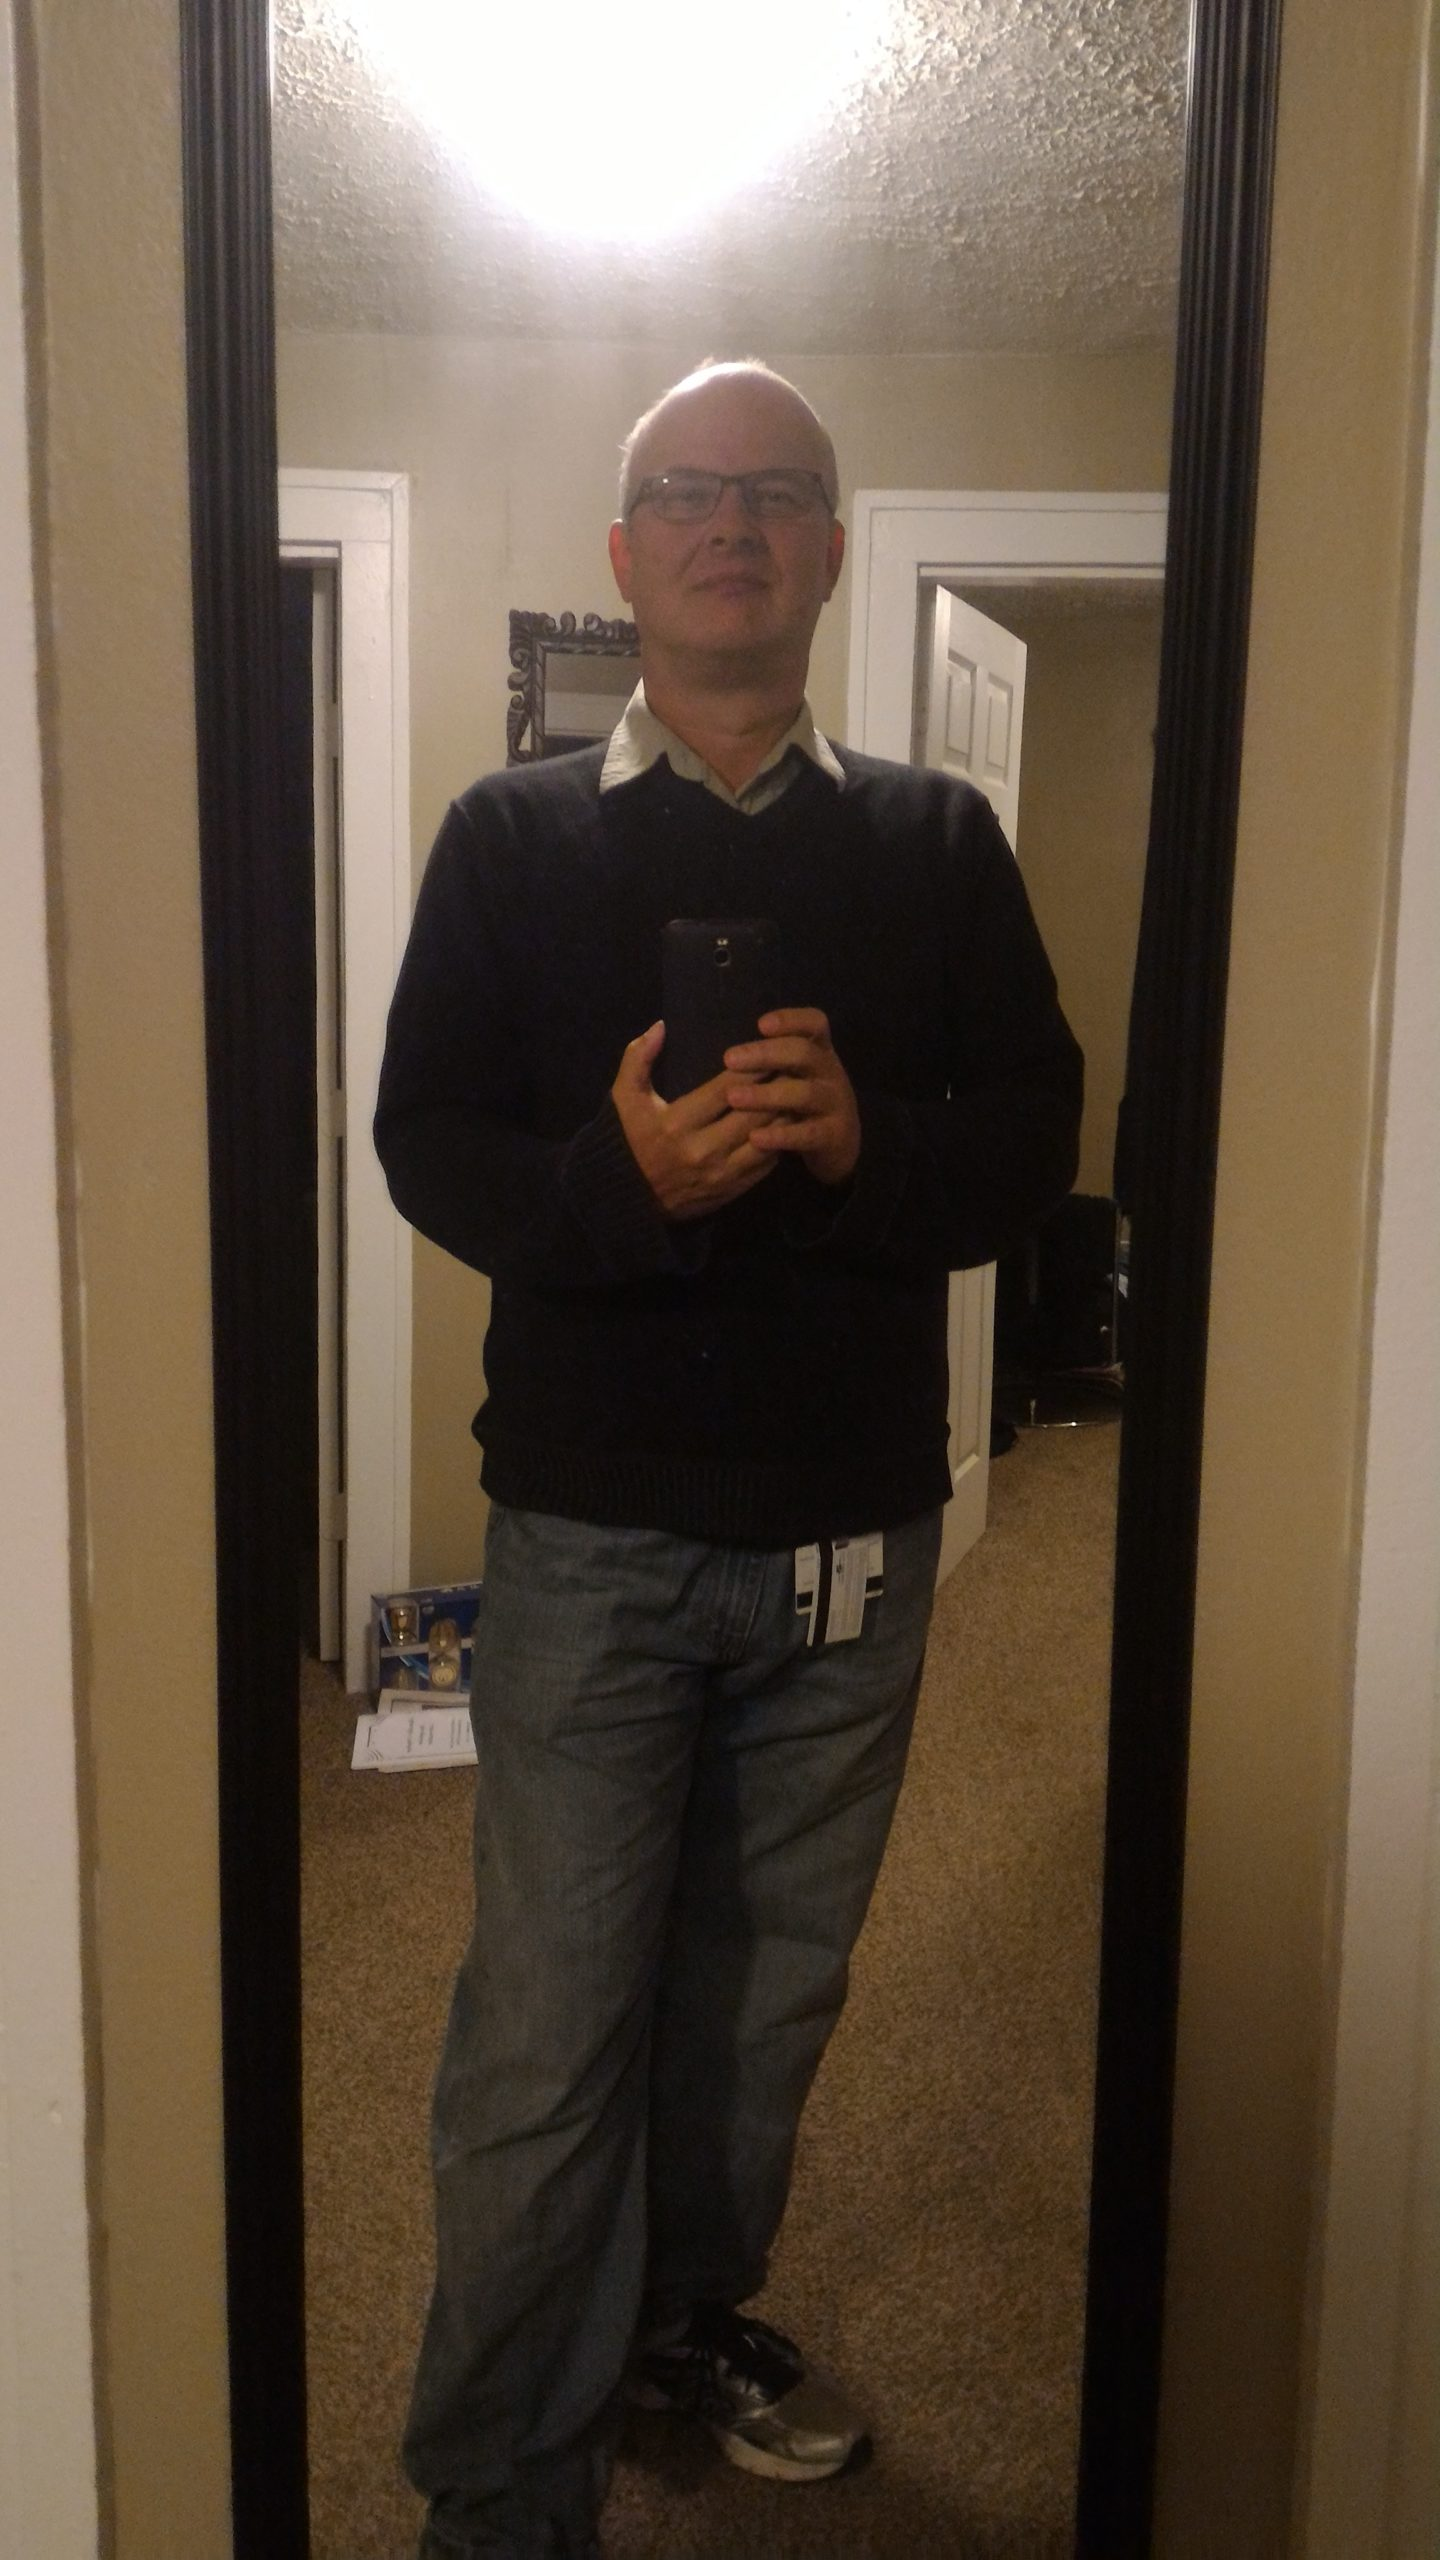 This photo shows me wearing running shoes, baggy jeans, and a black sweater over a collared shirt. An ID badge hangs from my belt and is visible just below the hem of the sweateer. Thebackground shows the black frame of the mirror against a beige wall.